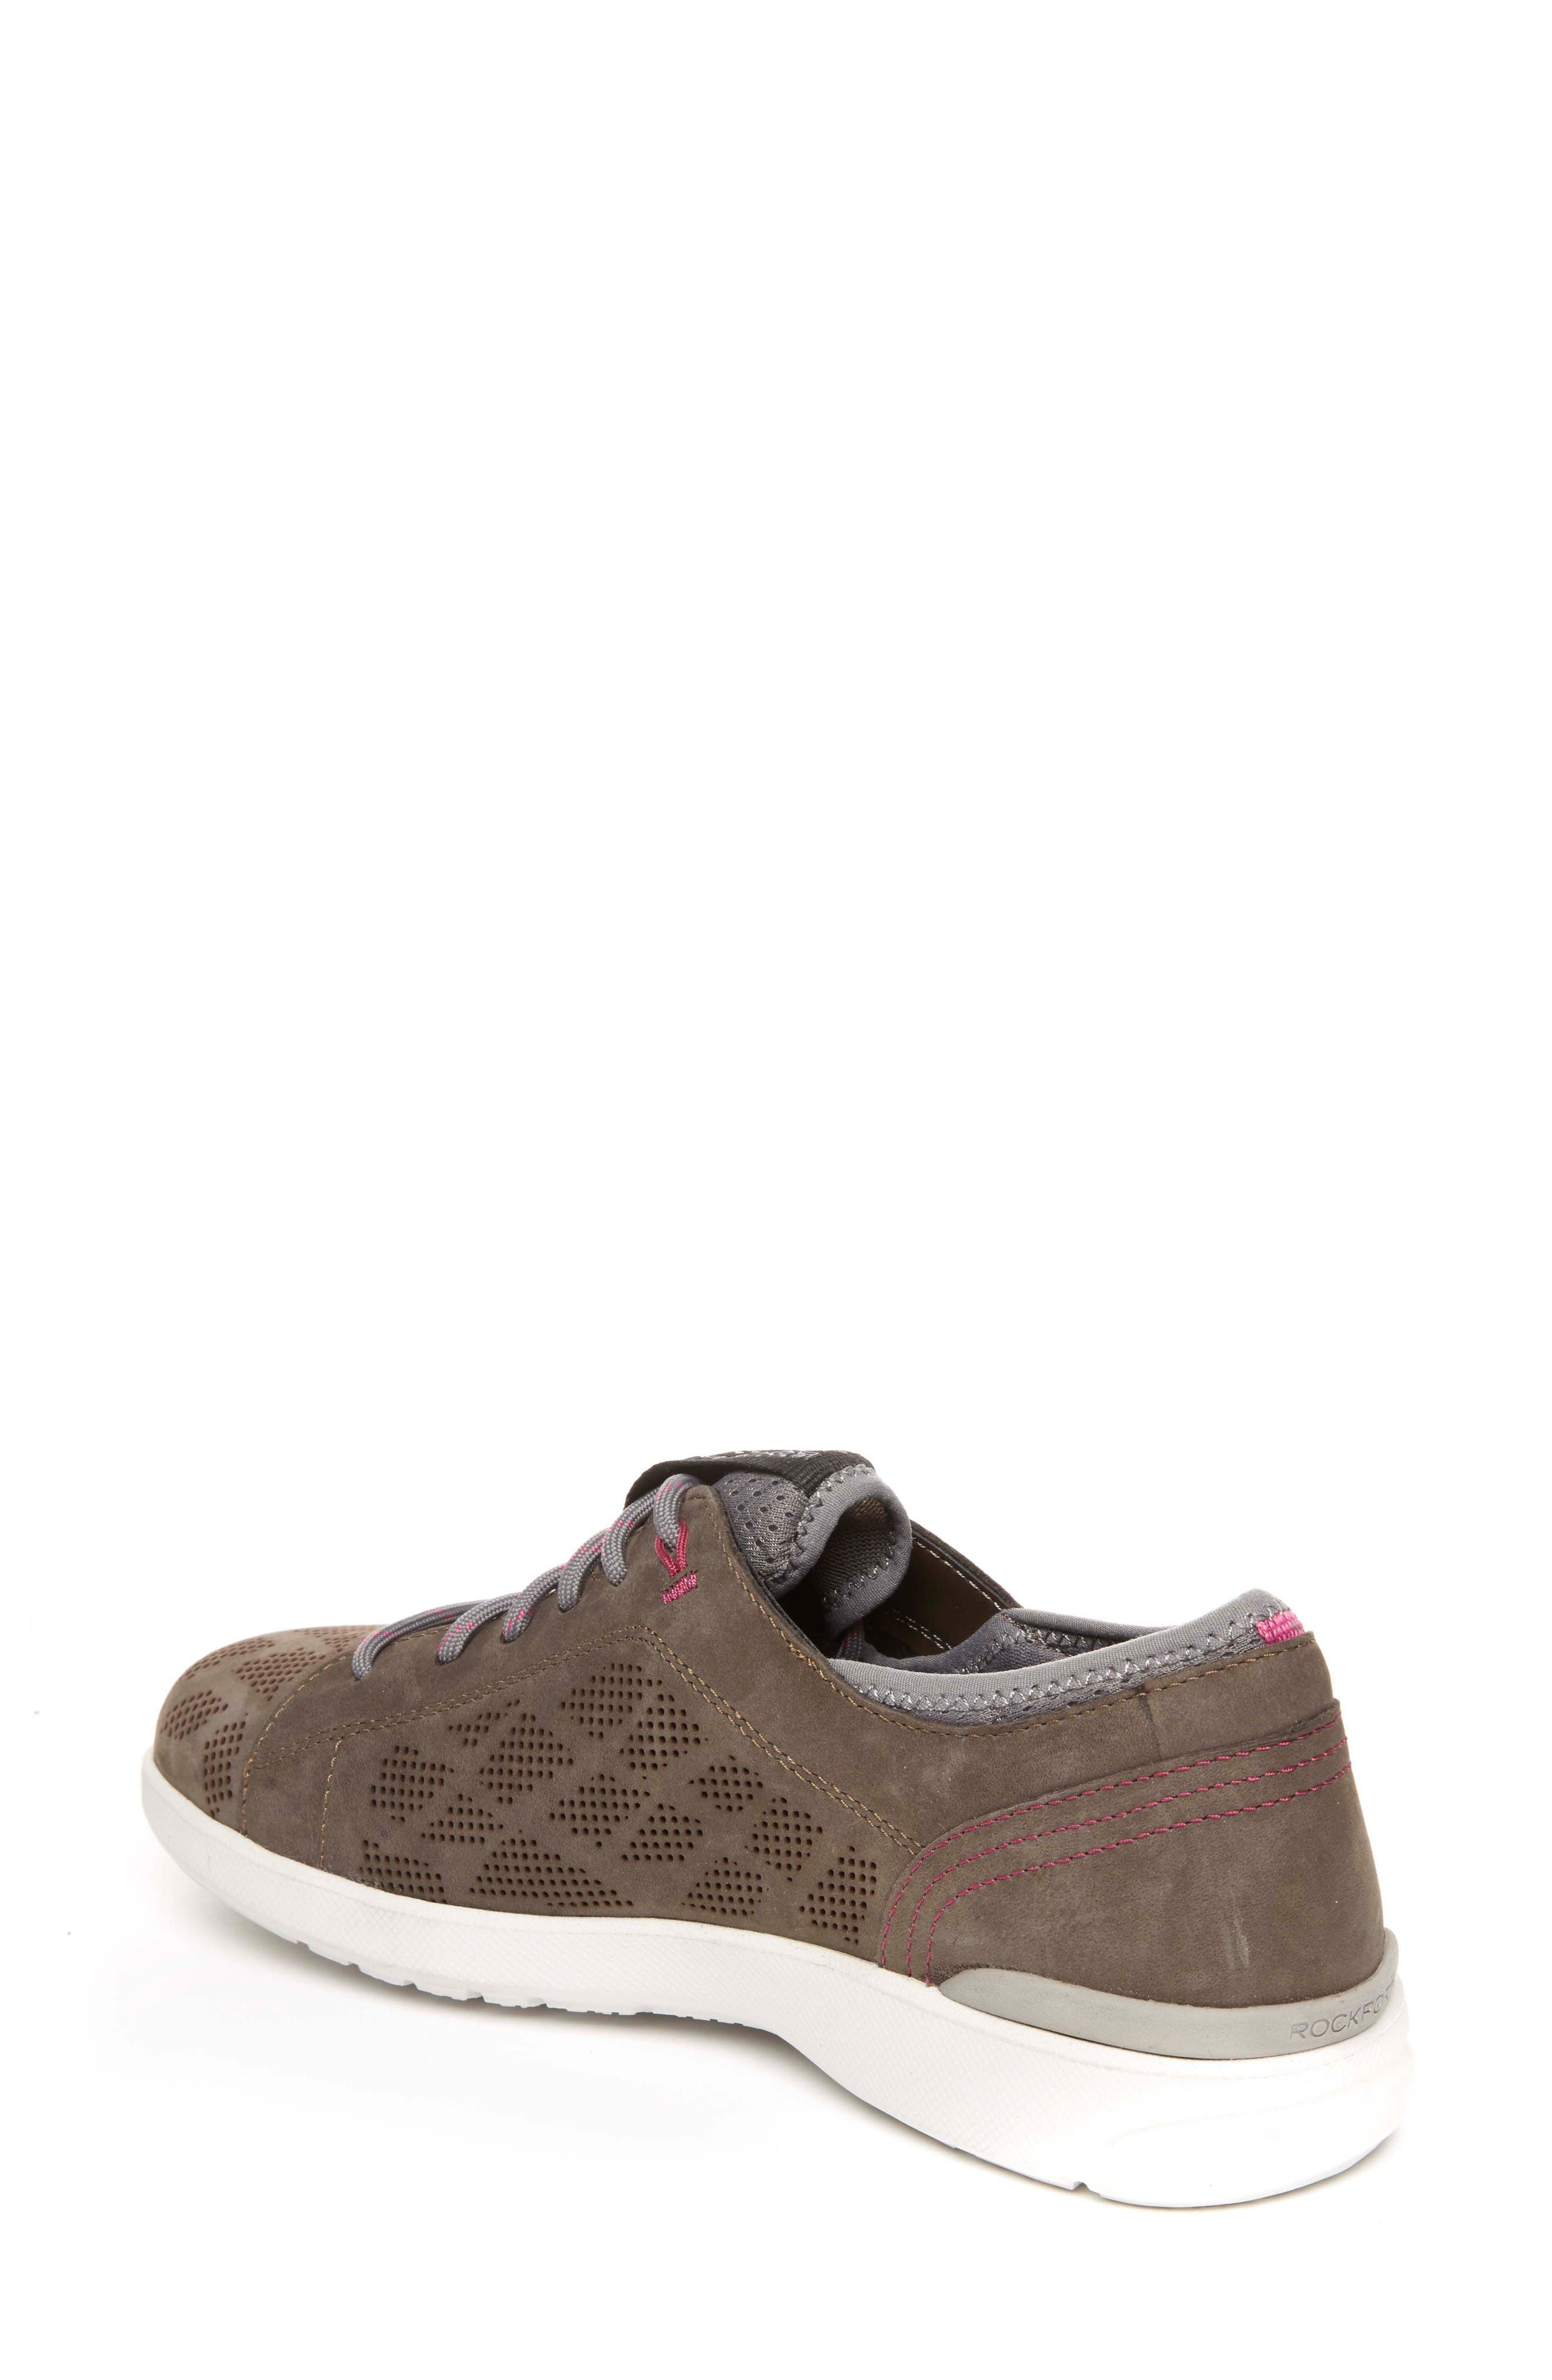 truFLEX Perforated Sneaker,                             Alternate thumbnail 2, color,                             Stone Leather